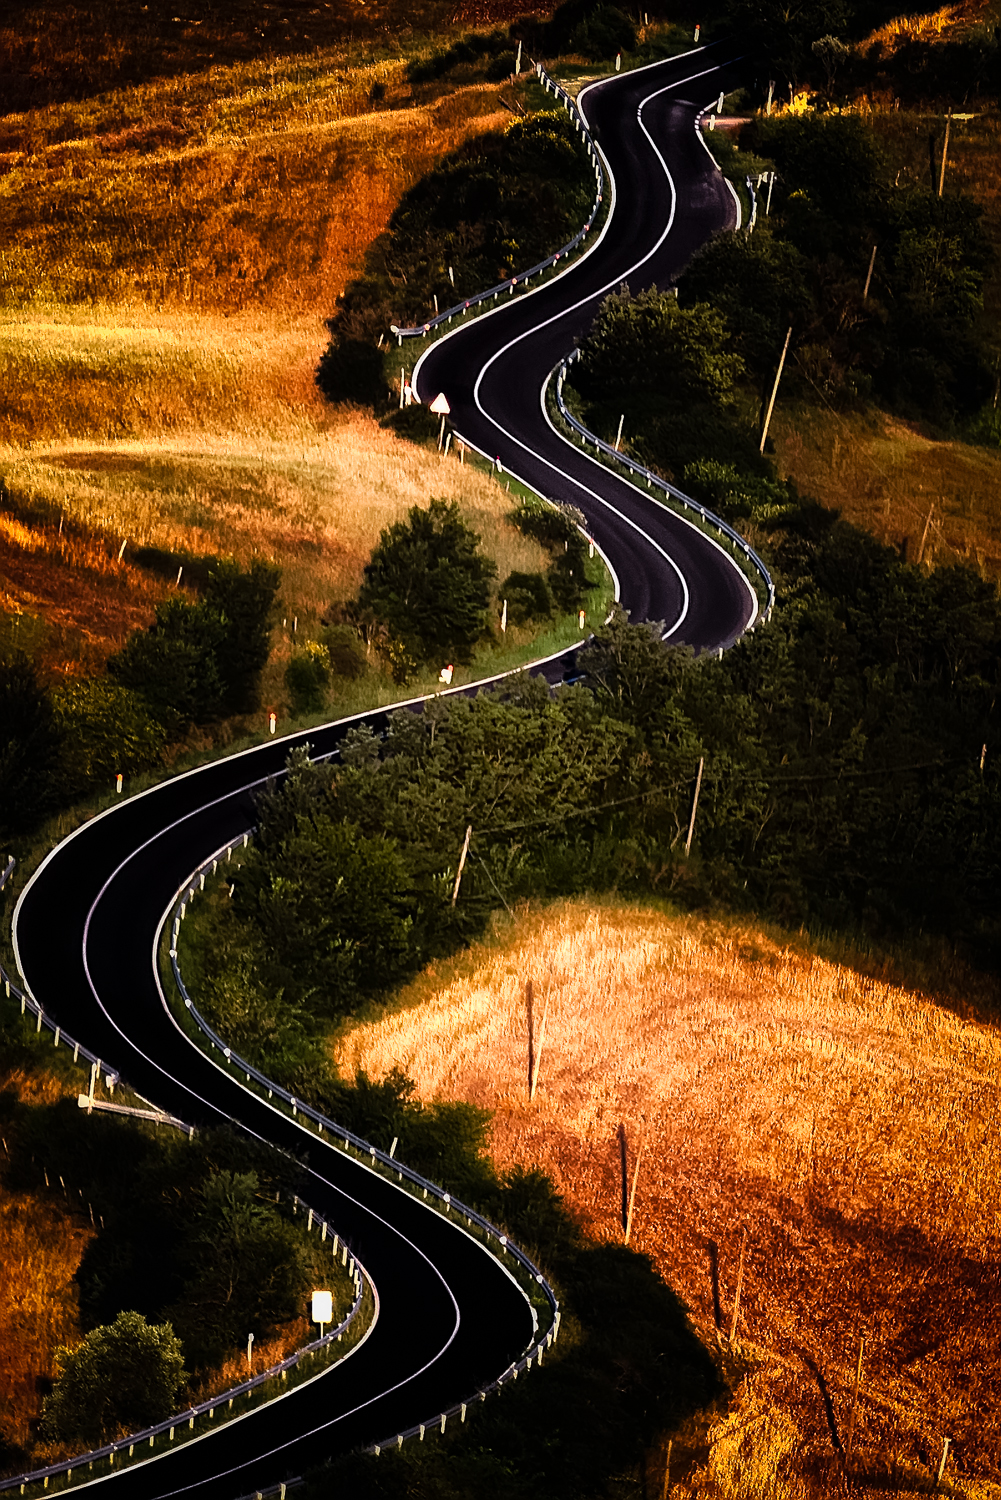 Bends, Toscana, Italy